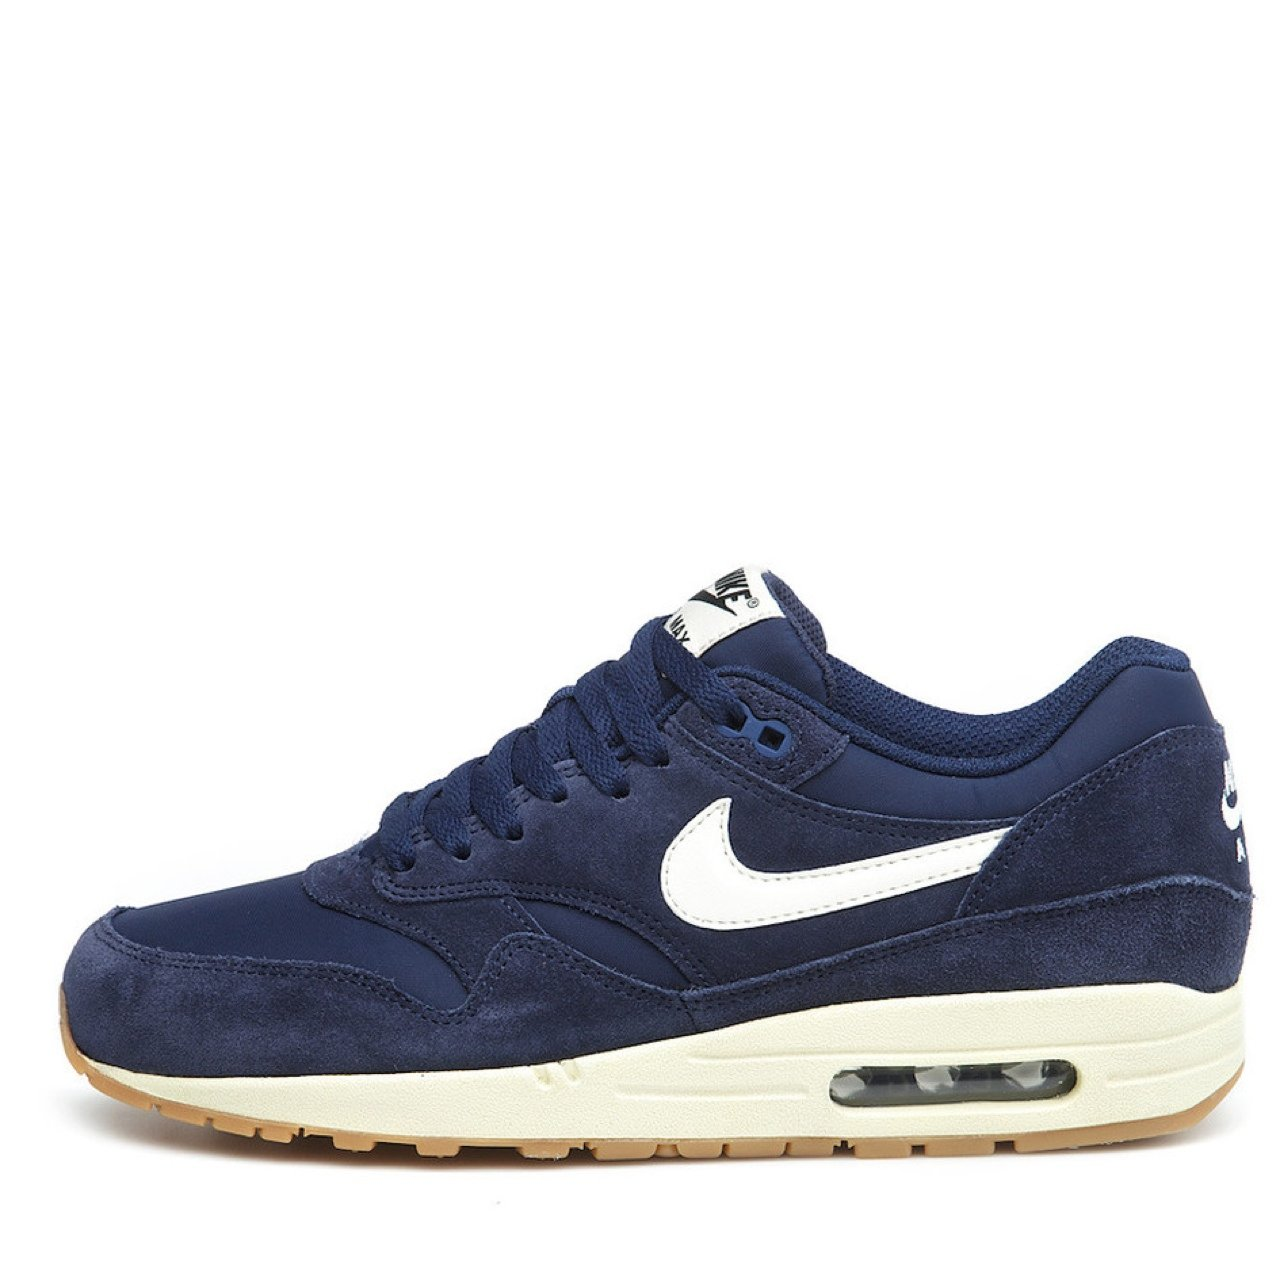 new arrival dc1b5 33b38 Nike Air Max 1 - Navy suede. Size 5.5 brand new in box navy